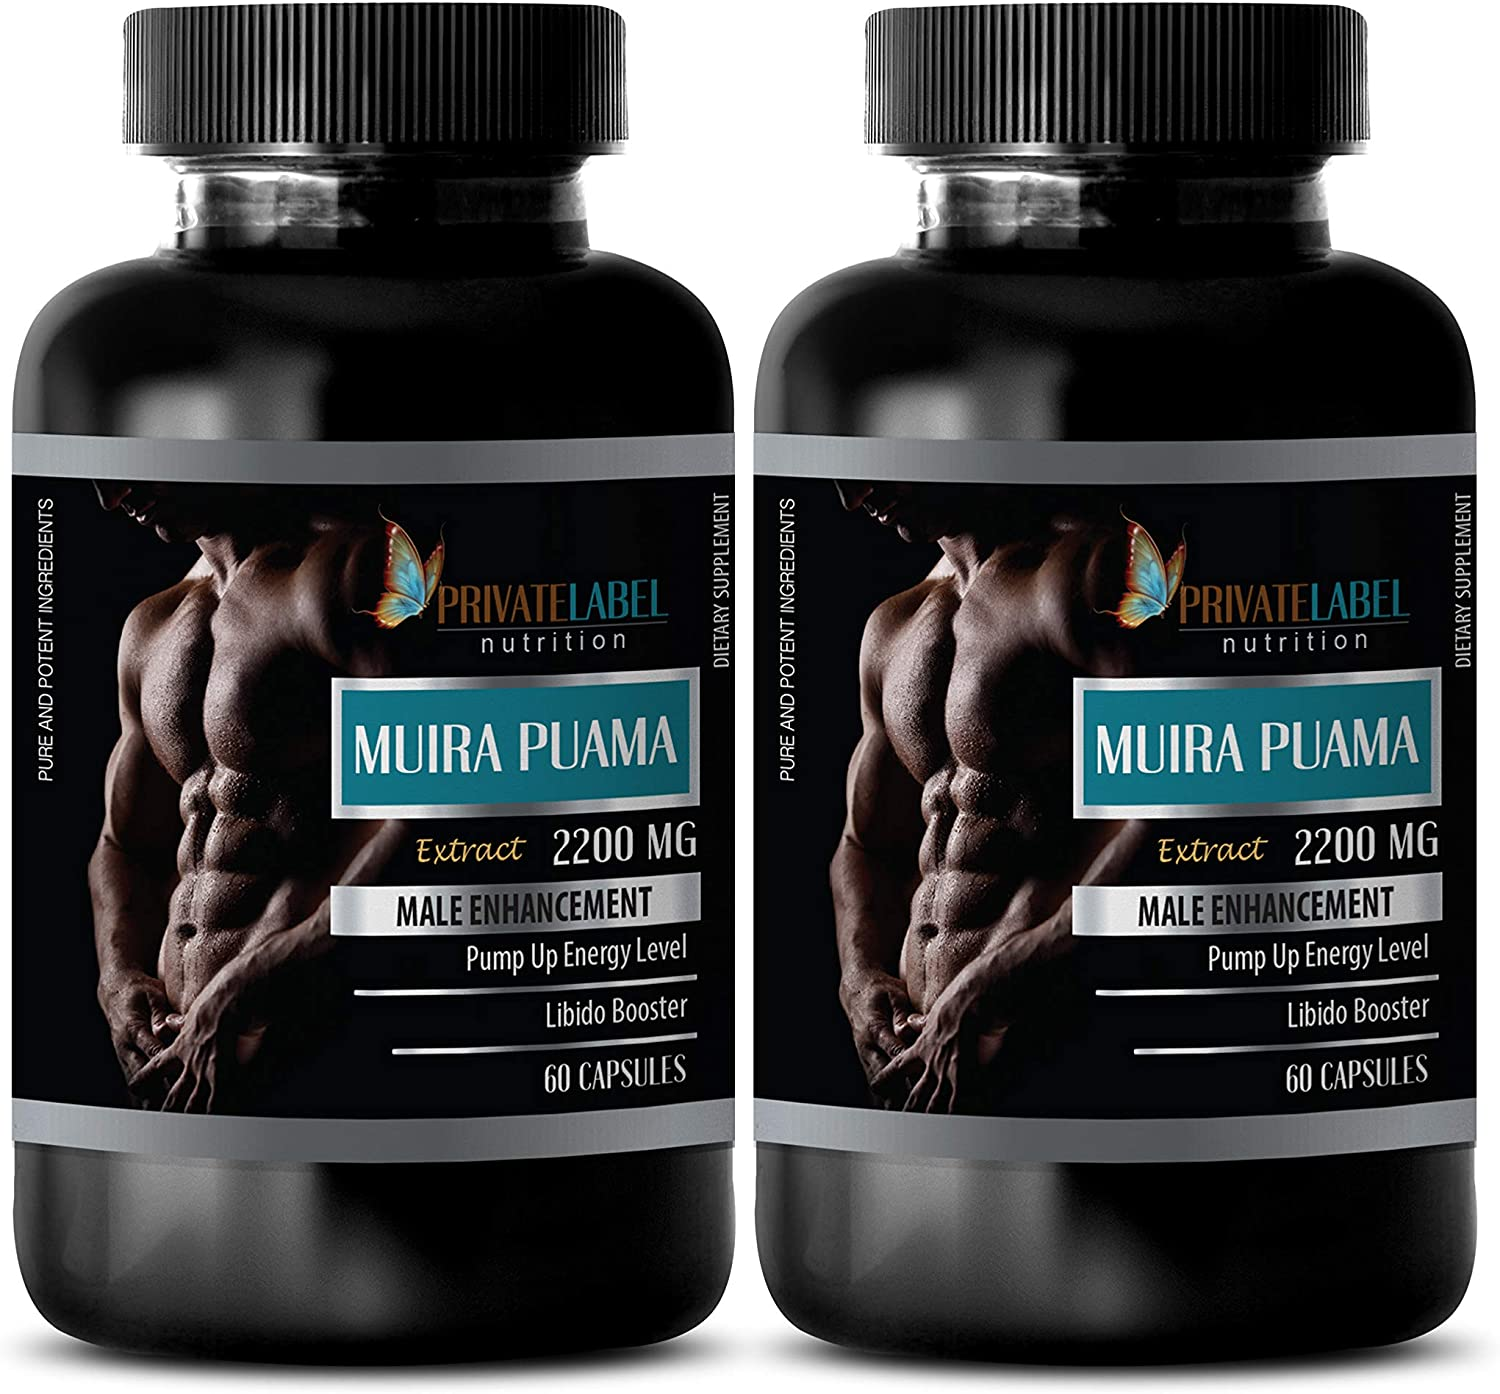 Enhancing low-pricing Pills Like - Muira PUAMA Extract A surprise price is realized 2200Mg Male Enhance